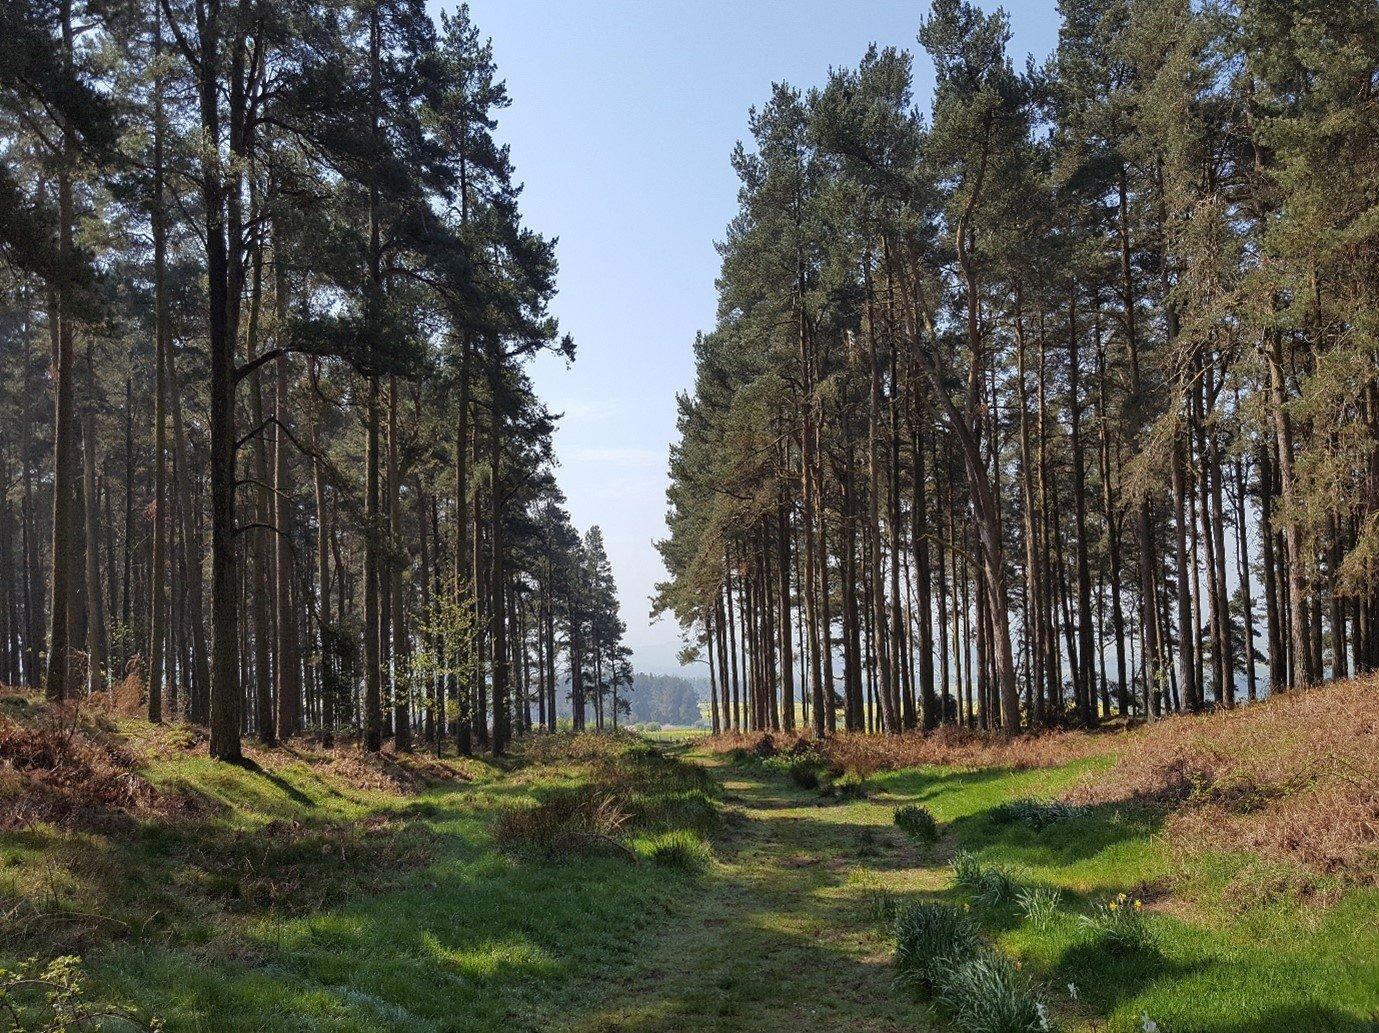 forest path tall pine trees blue sky uk walking holiday